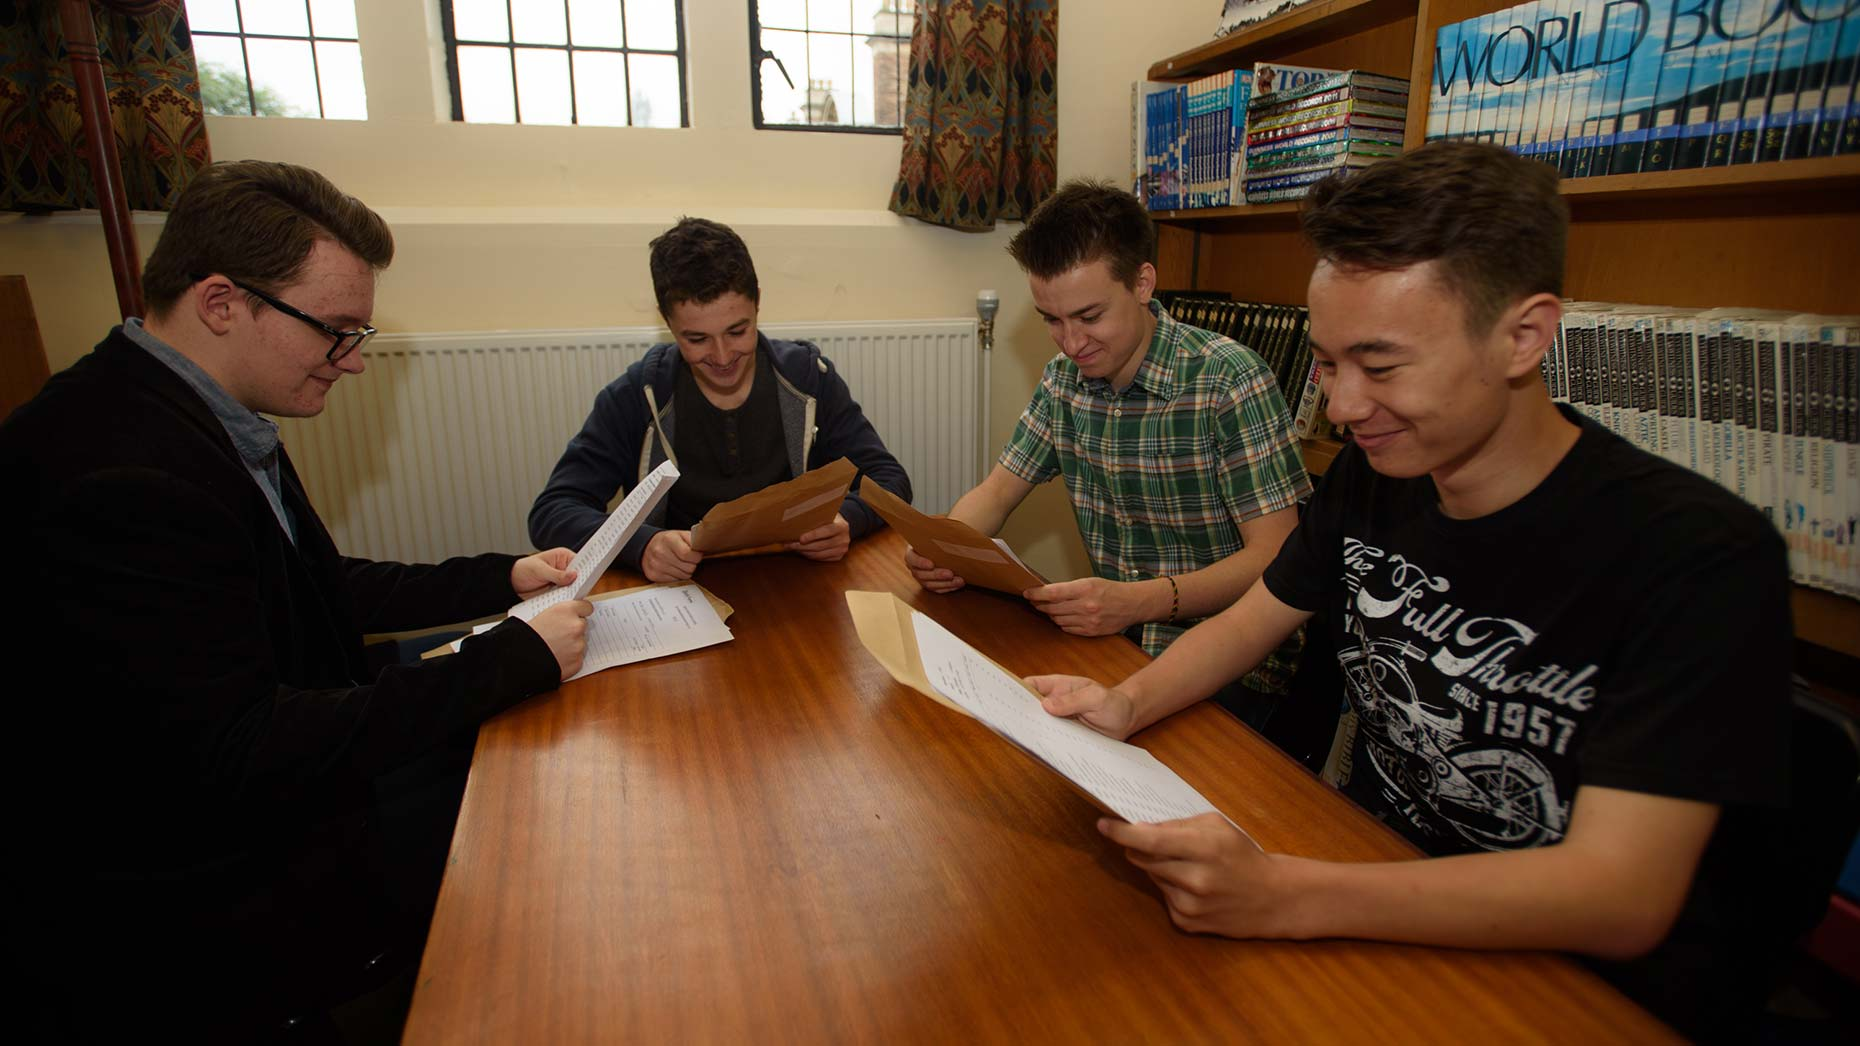 Jack Saunders, Luca Shepherd, Dylan Freestone and Stephen Cheung. Photo: Steve Smailes for The Lincolnite